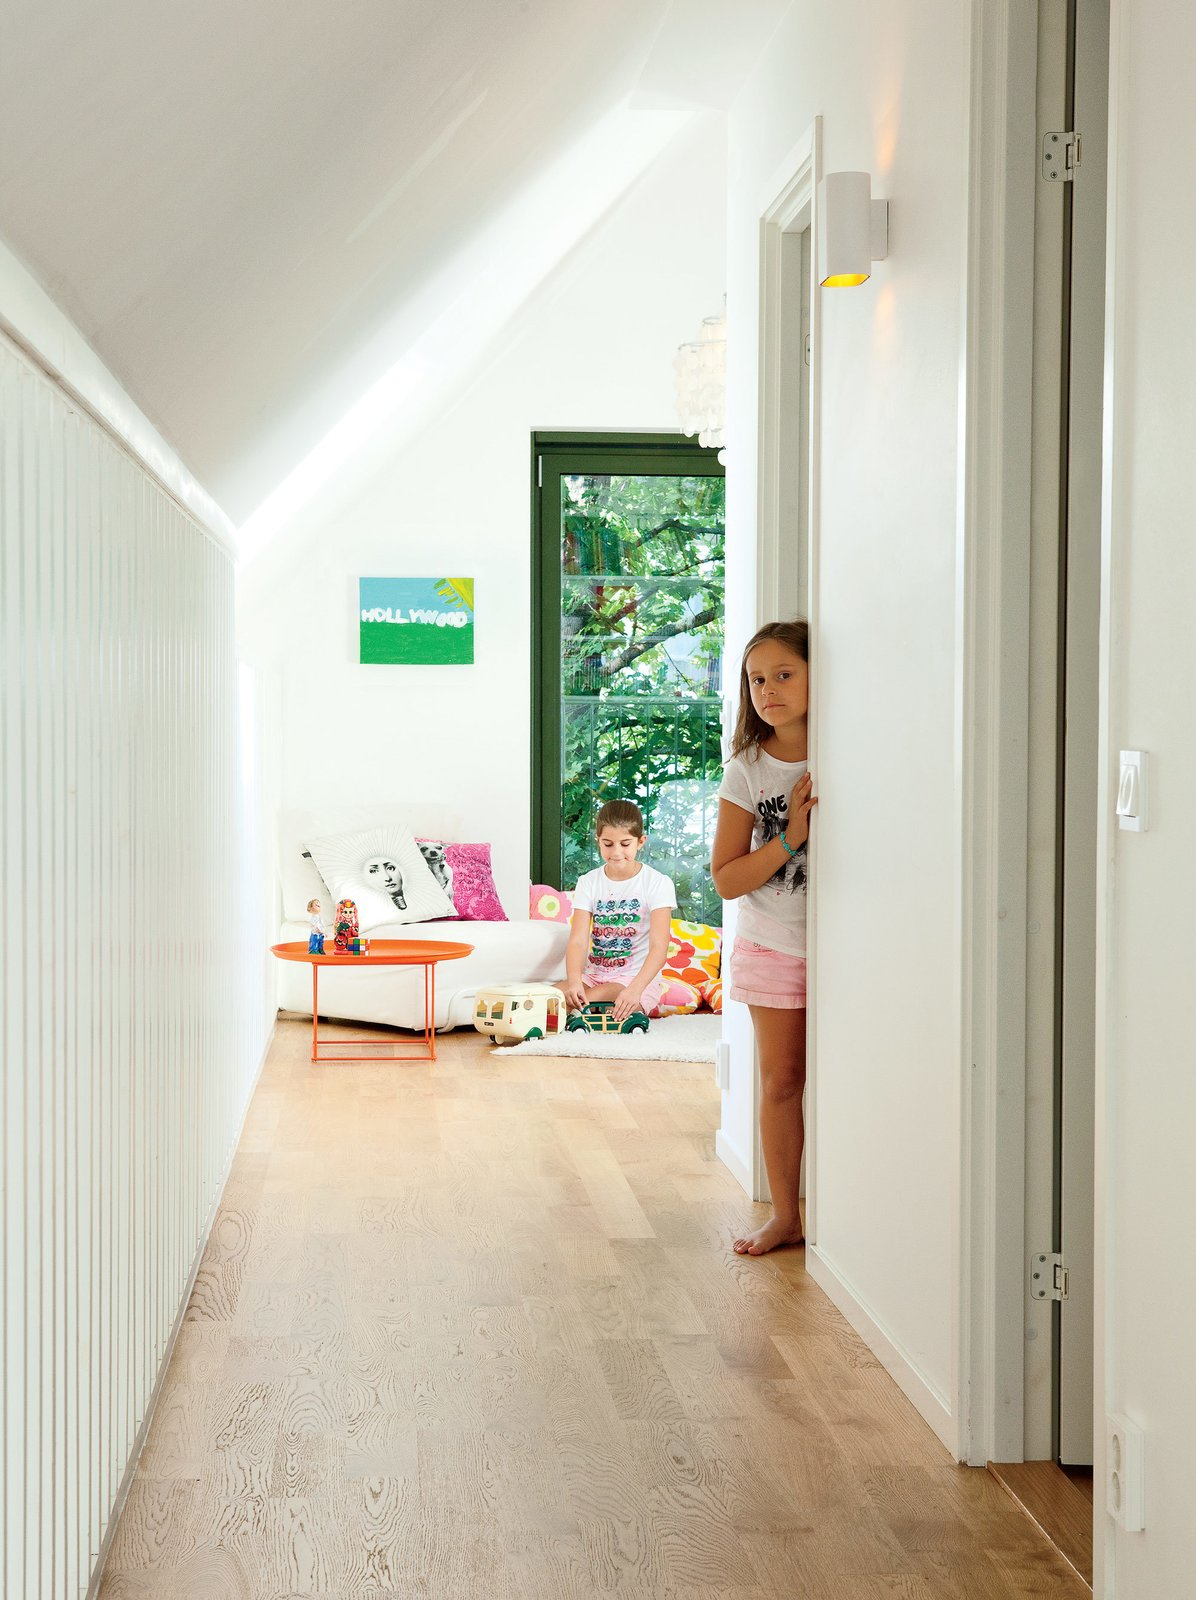 Kids Room and Bedroom Room Type The second floor holds three bedrooms and a living area for the girls. Here, Paula, 11, and Sofia, 9, hang out near an IKEA PS 2012 sofa by Nike Karlsson. The slatted wall at left allows a view to the downstairs.  Best Photos